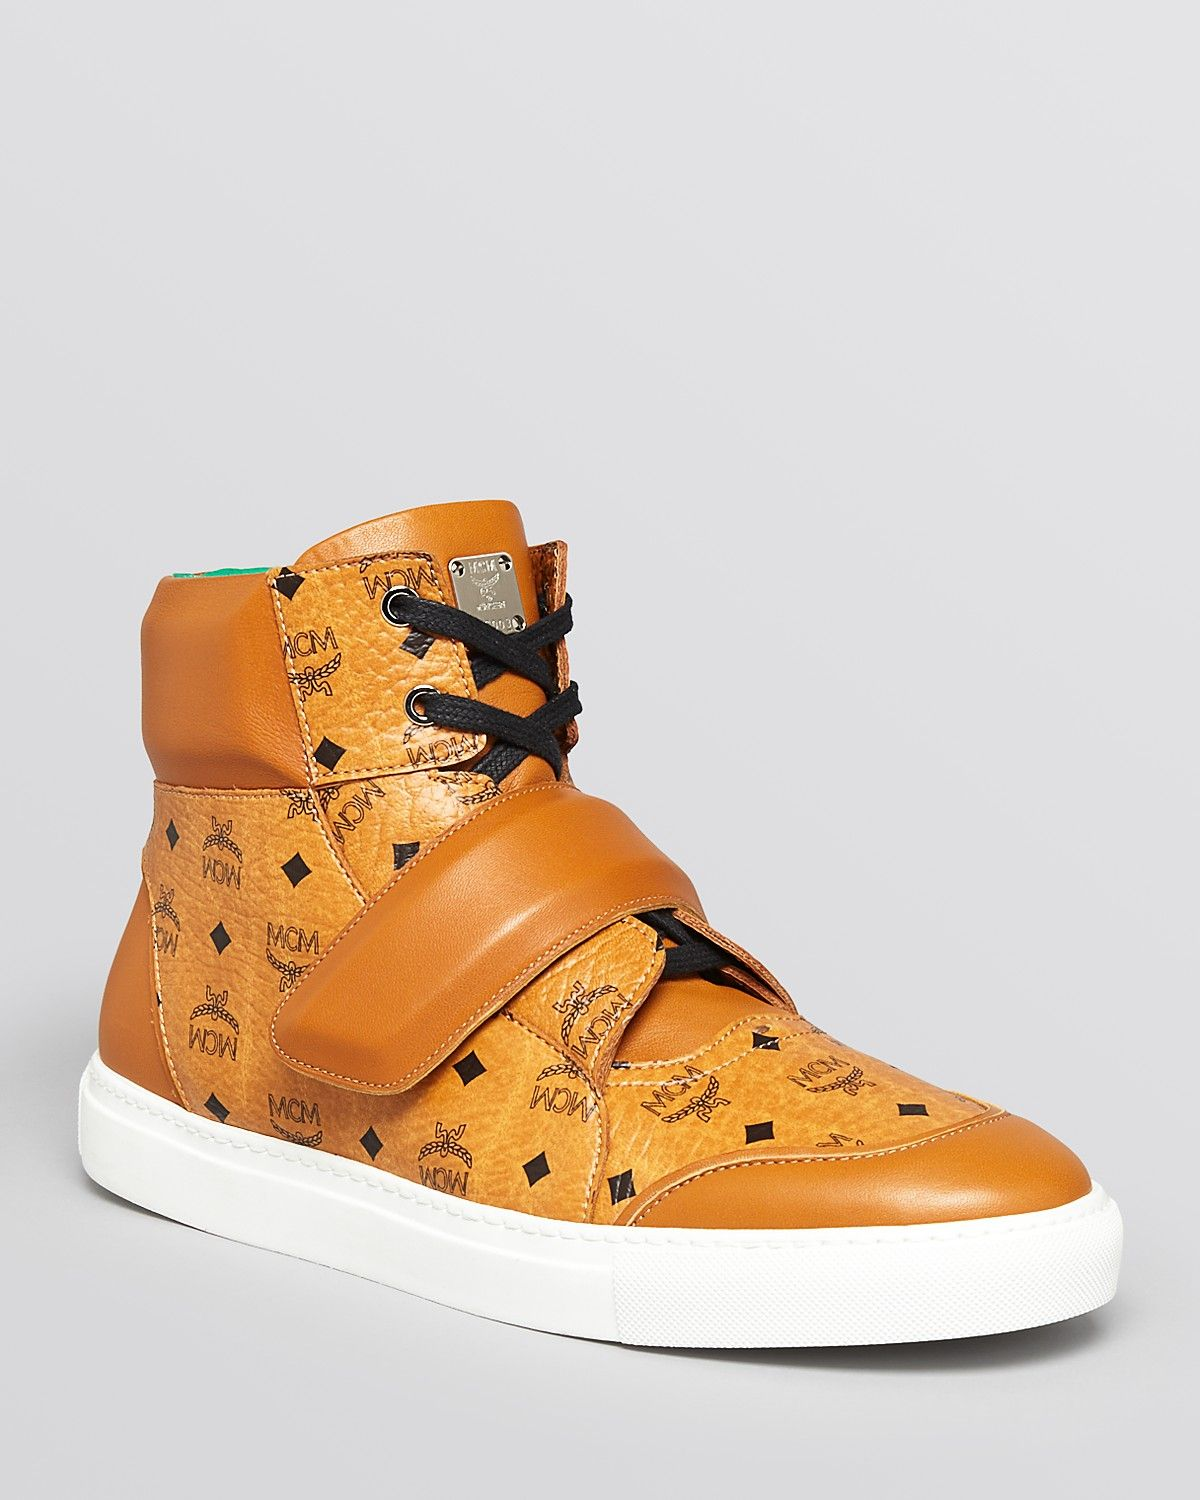 7dfaeb31643 MCM Sneakers | MCM Visetos High Top Street Sneakers | Bloomingdale's ...